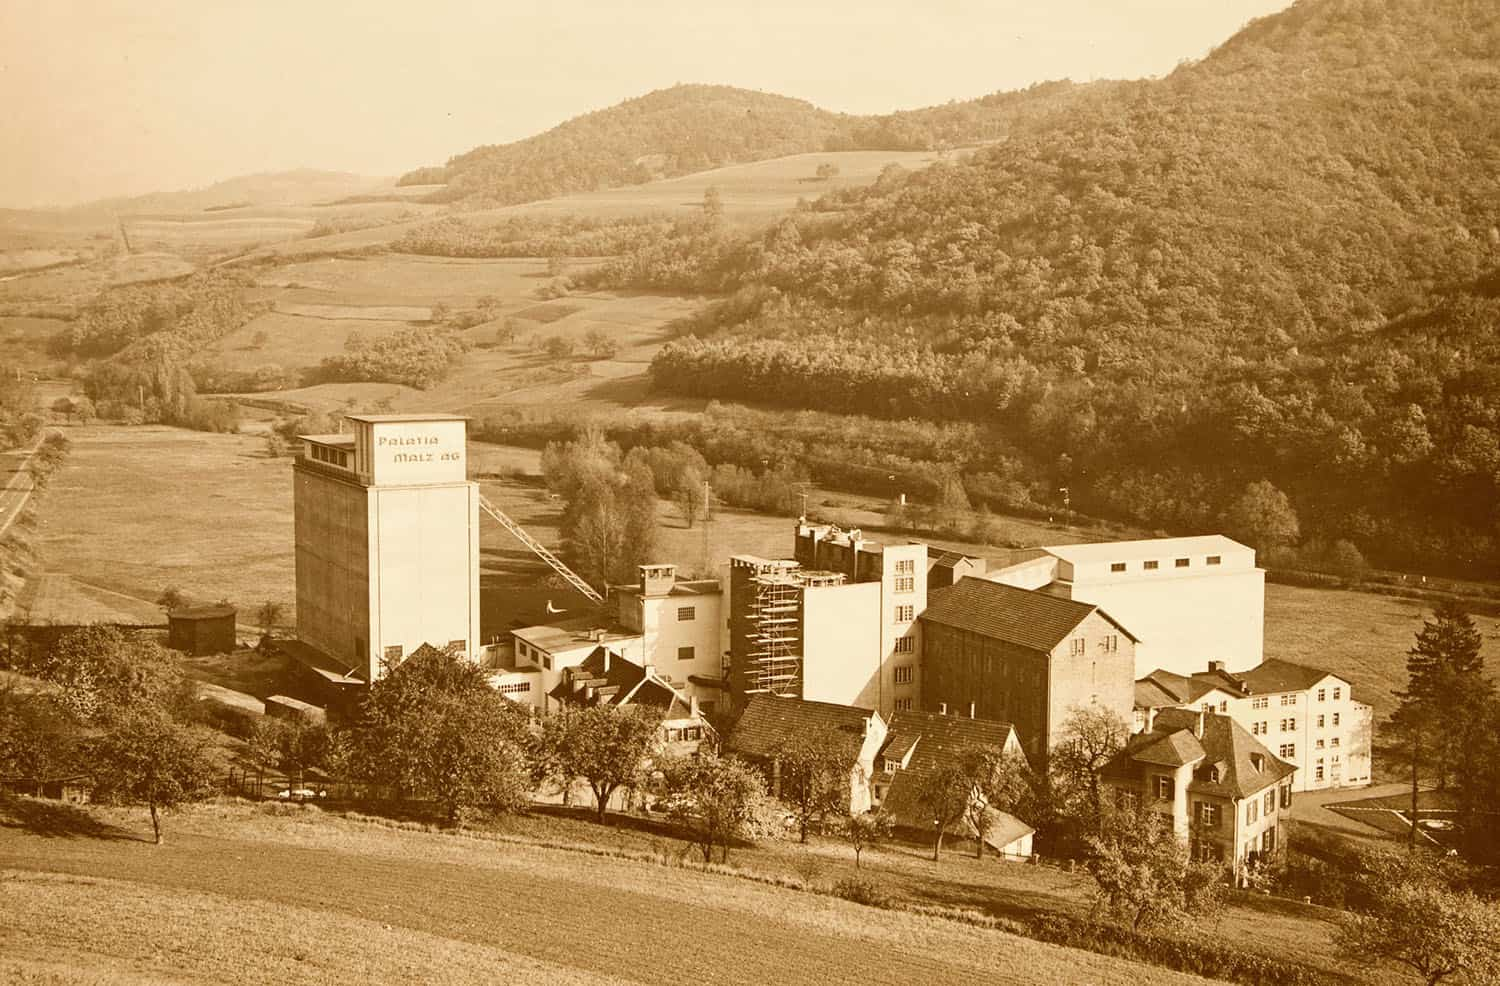 kreimbach malting house germany